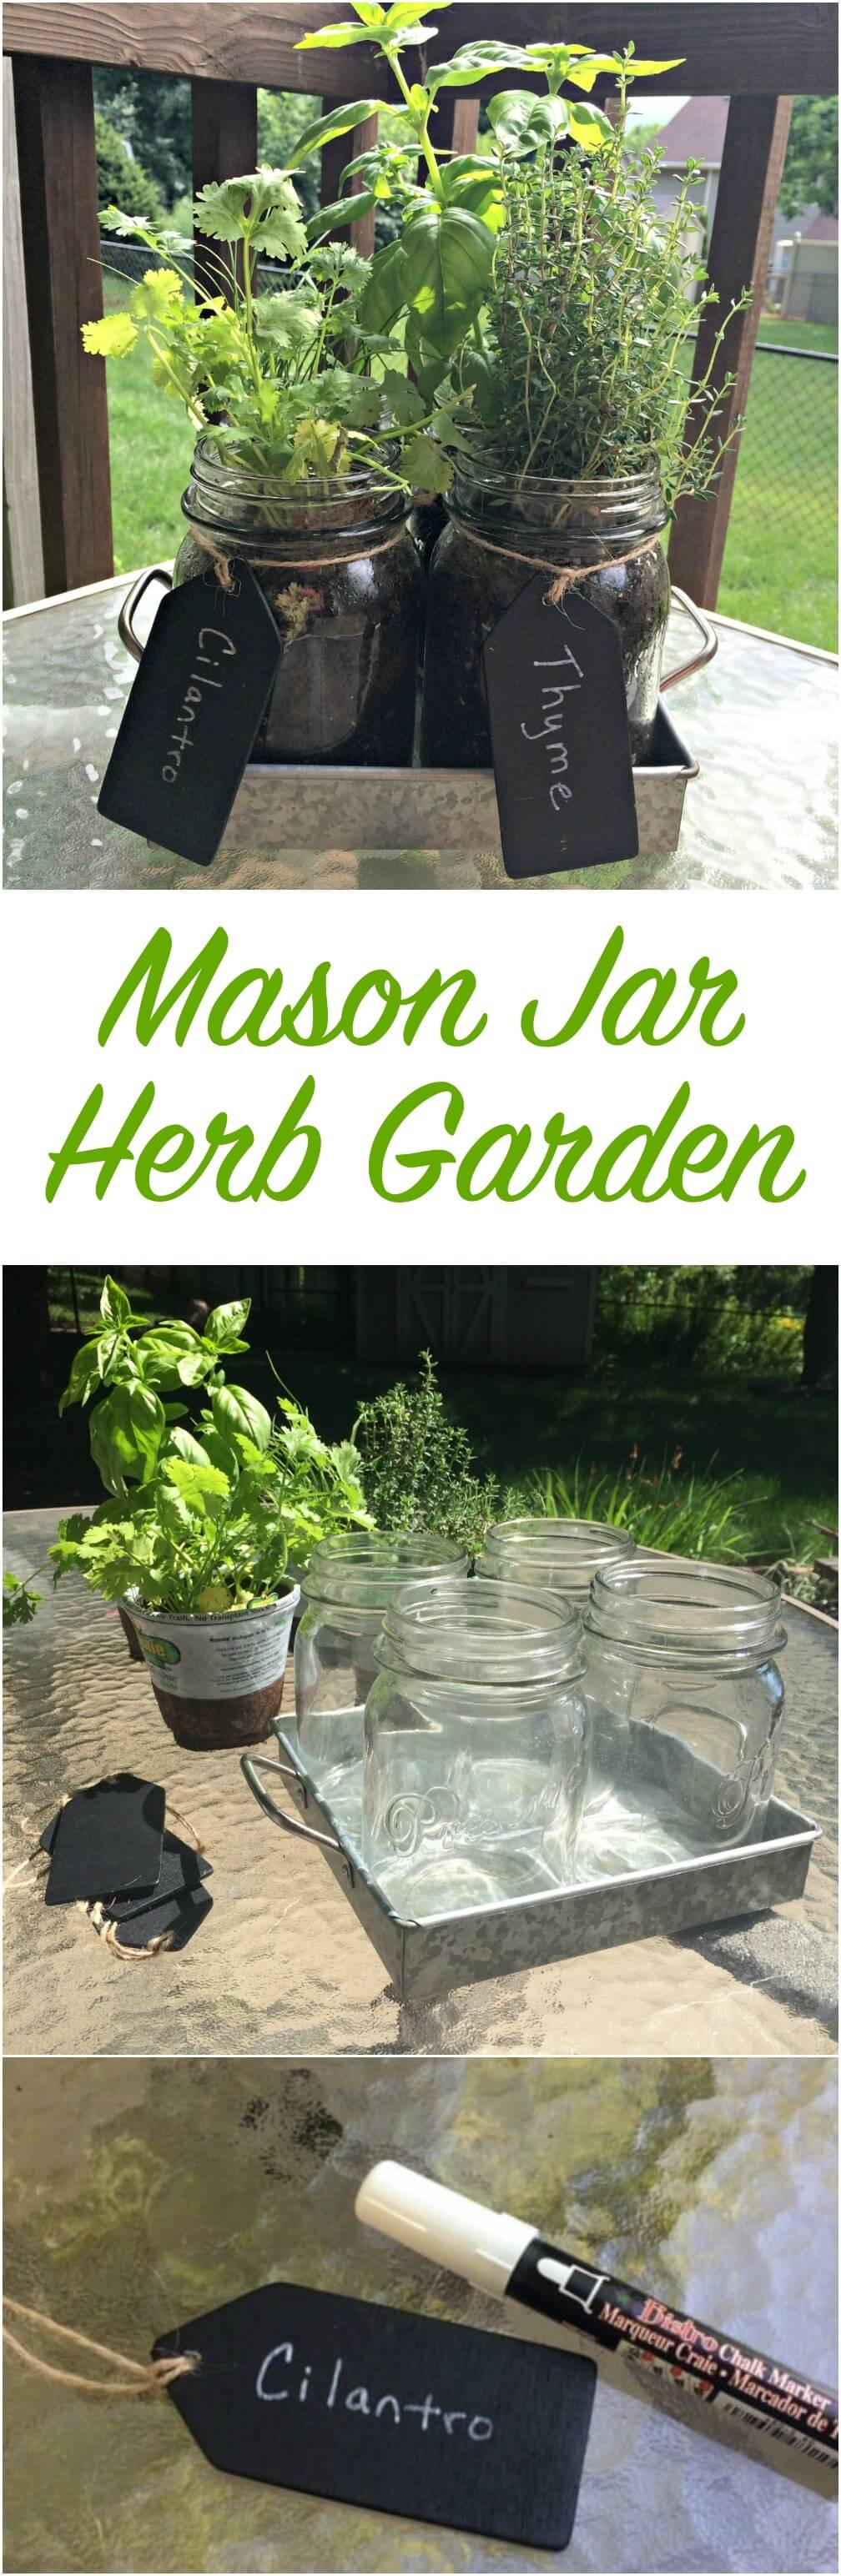 Make a Mason Jar Herb Garden